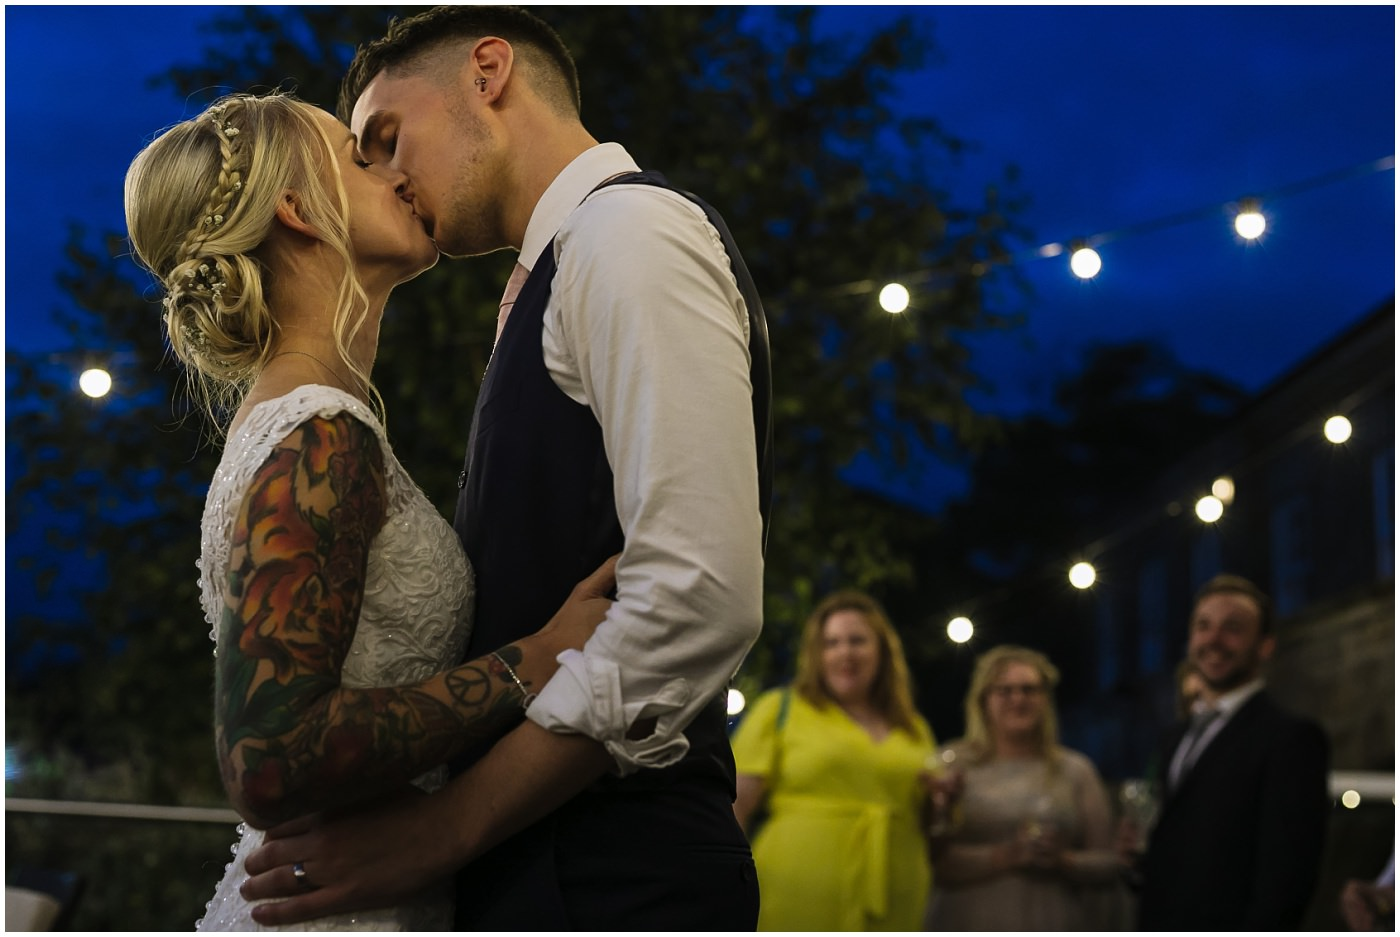 Tattooed couple wedding inspiration